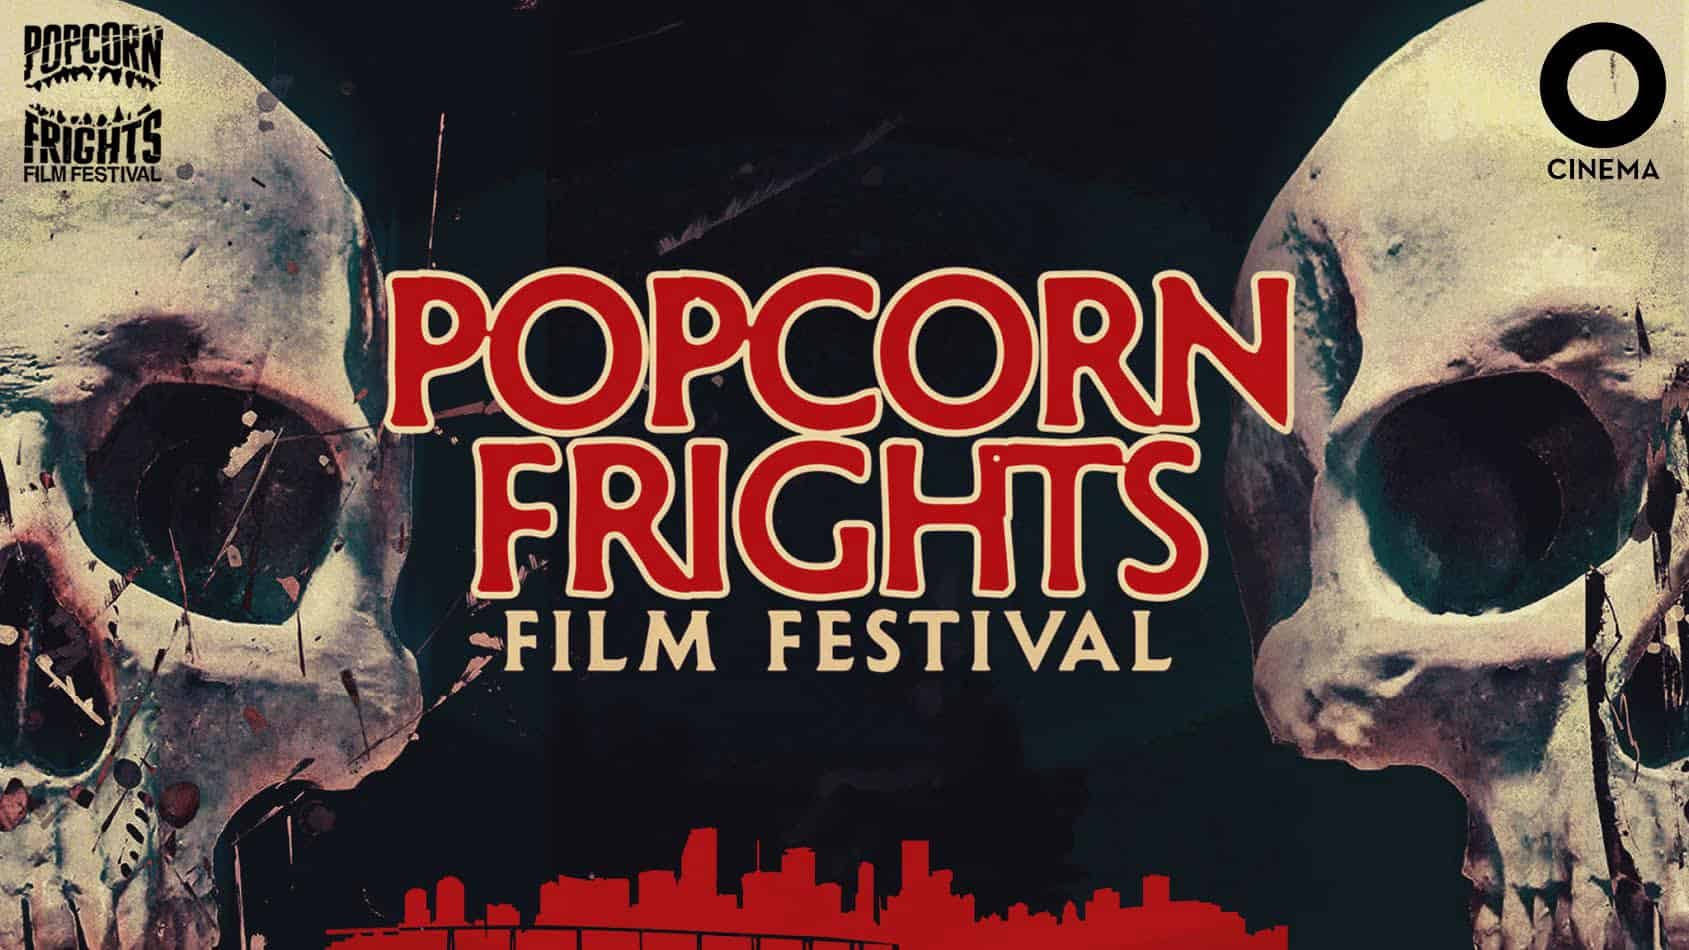 Horror Movie News:  Popcorn Frights Film Festival August 10-16